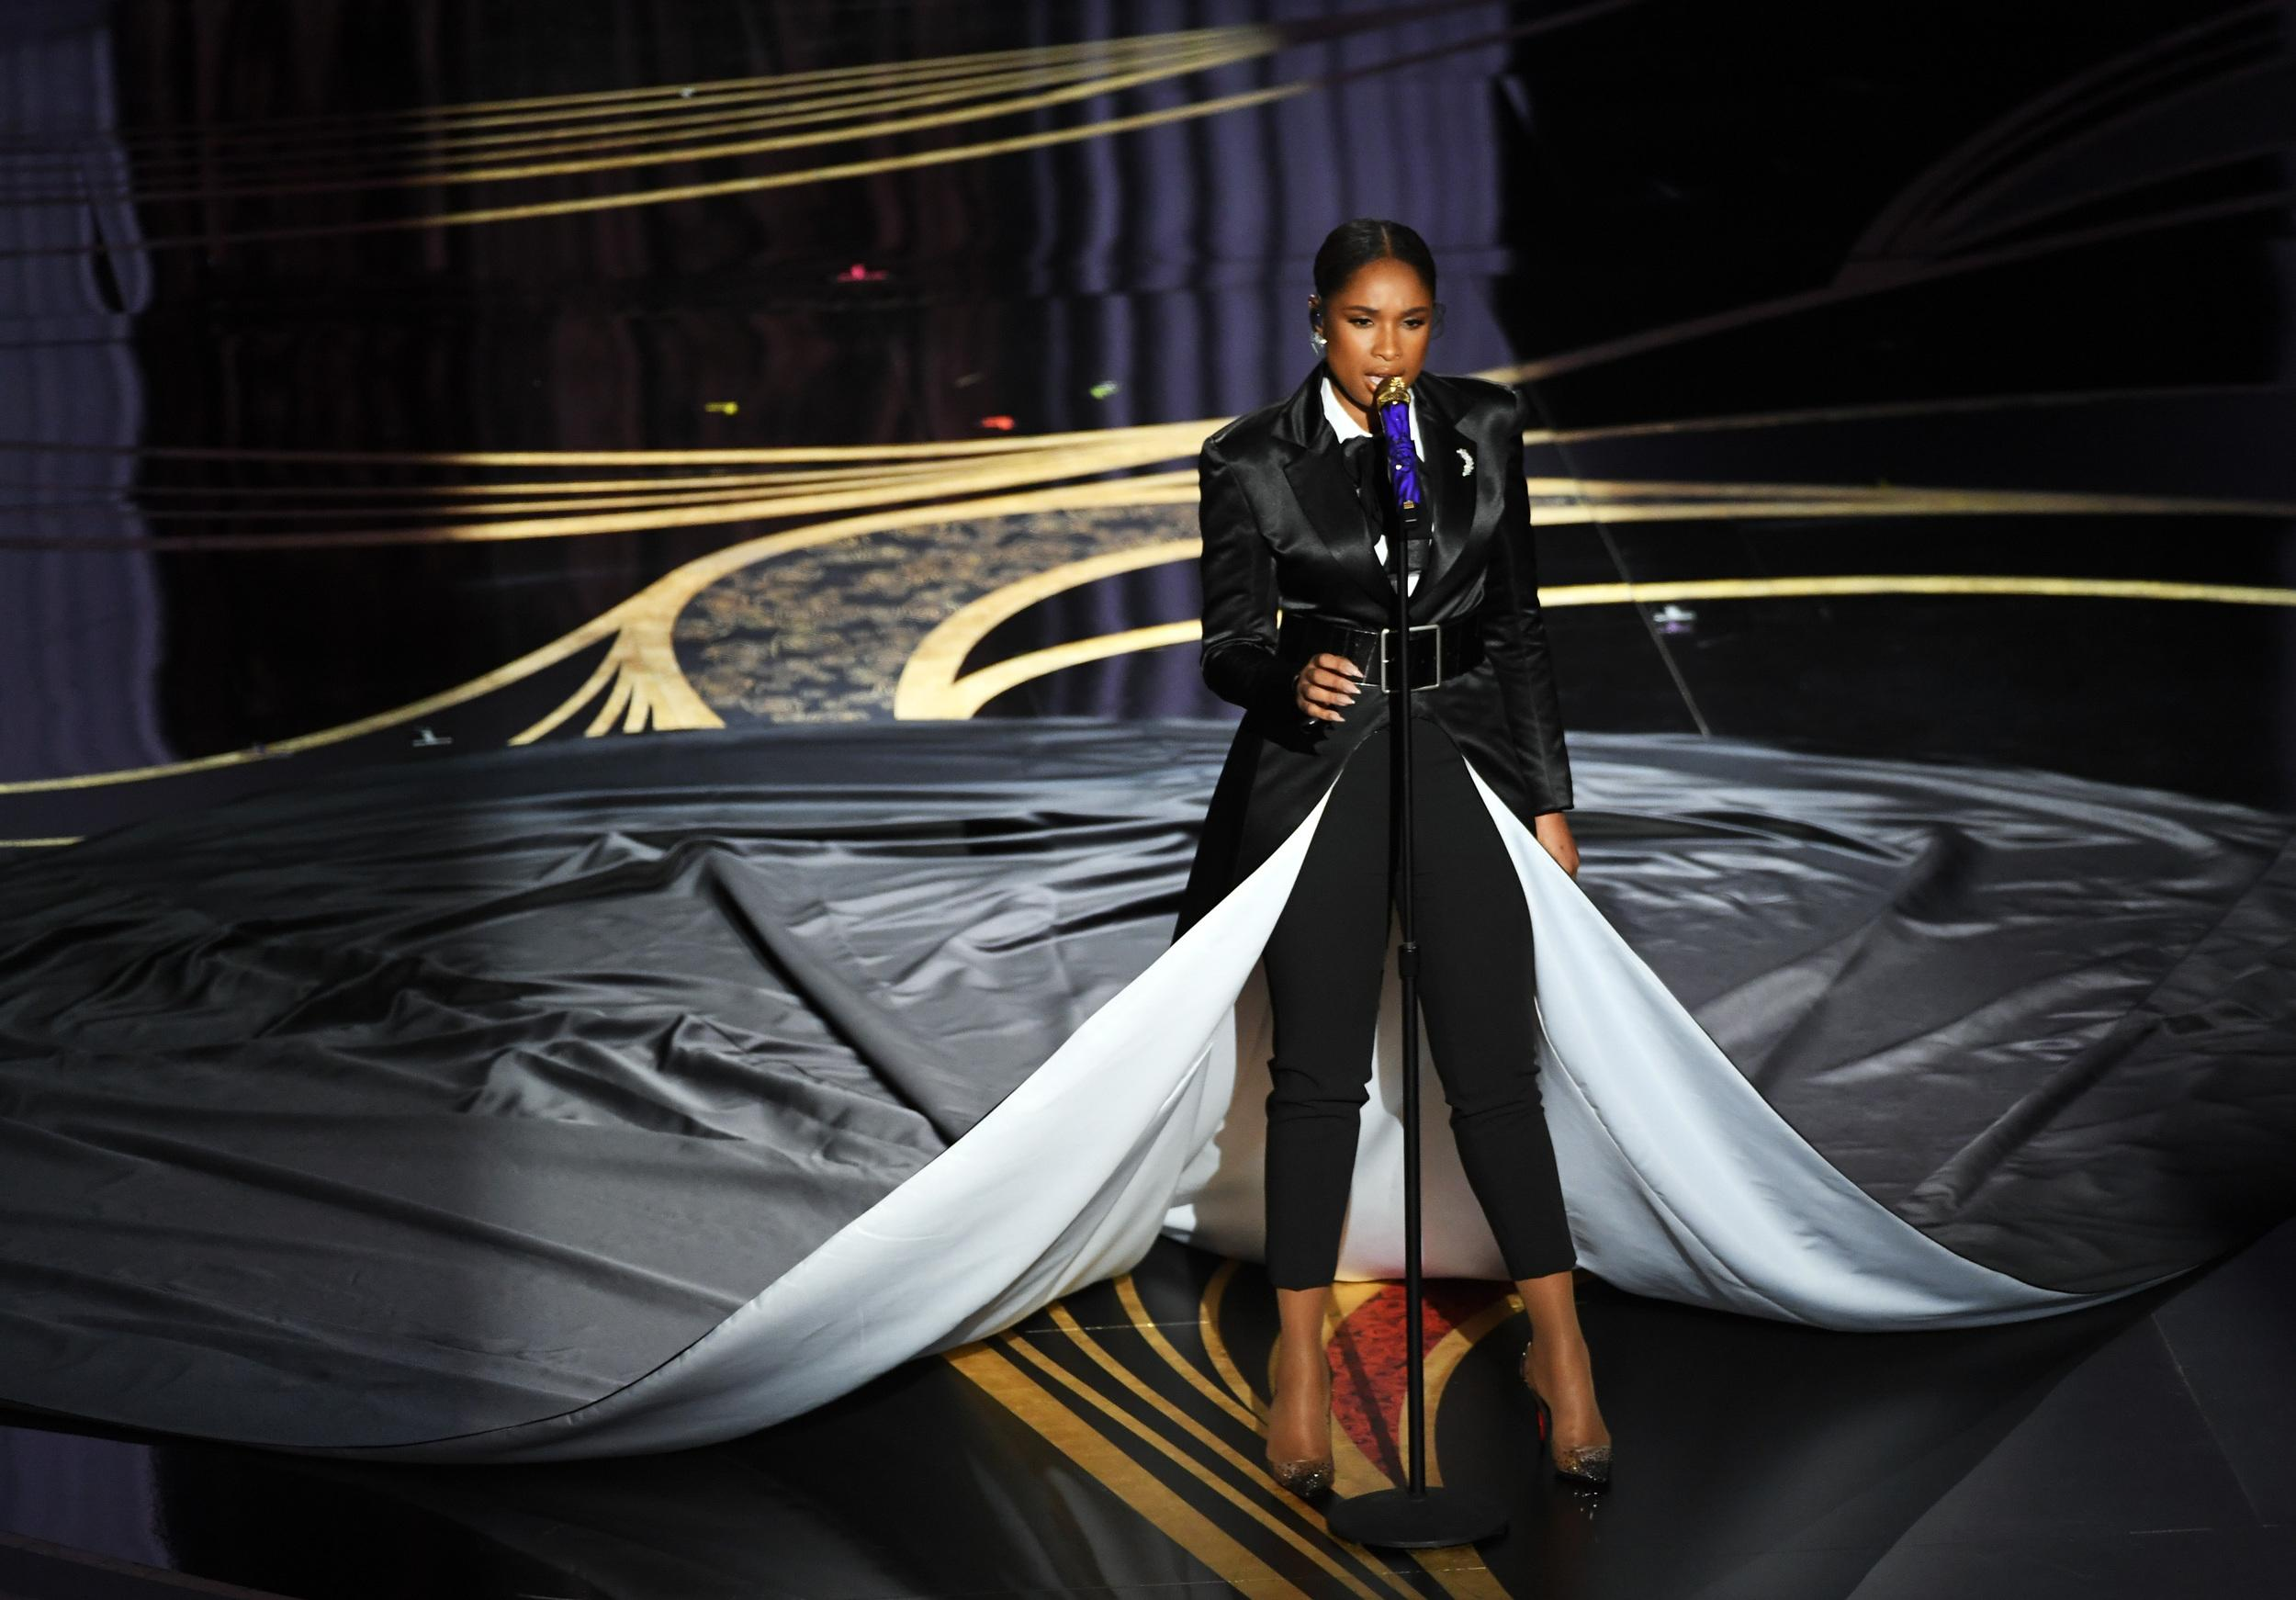 HOLLYWOOD, CALIFORNIA - FEBRUARY 24: Jennifer Hudson performs onstage during the 91st Annual Academy Awards at Dolby Theatre on February 24, 2019 in Hollywood, California. (Photo by Kevin Winter/Getty Images)